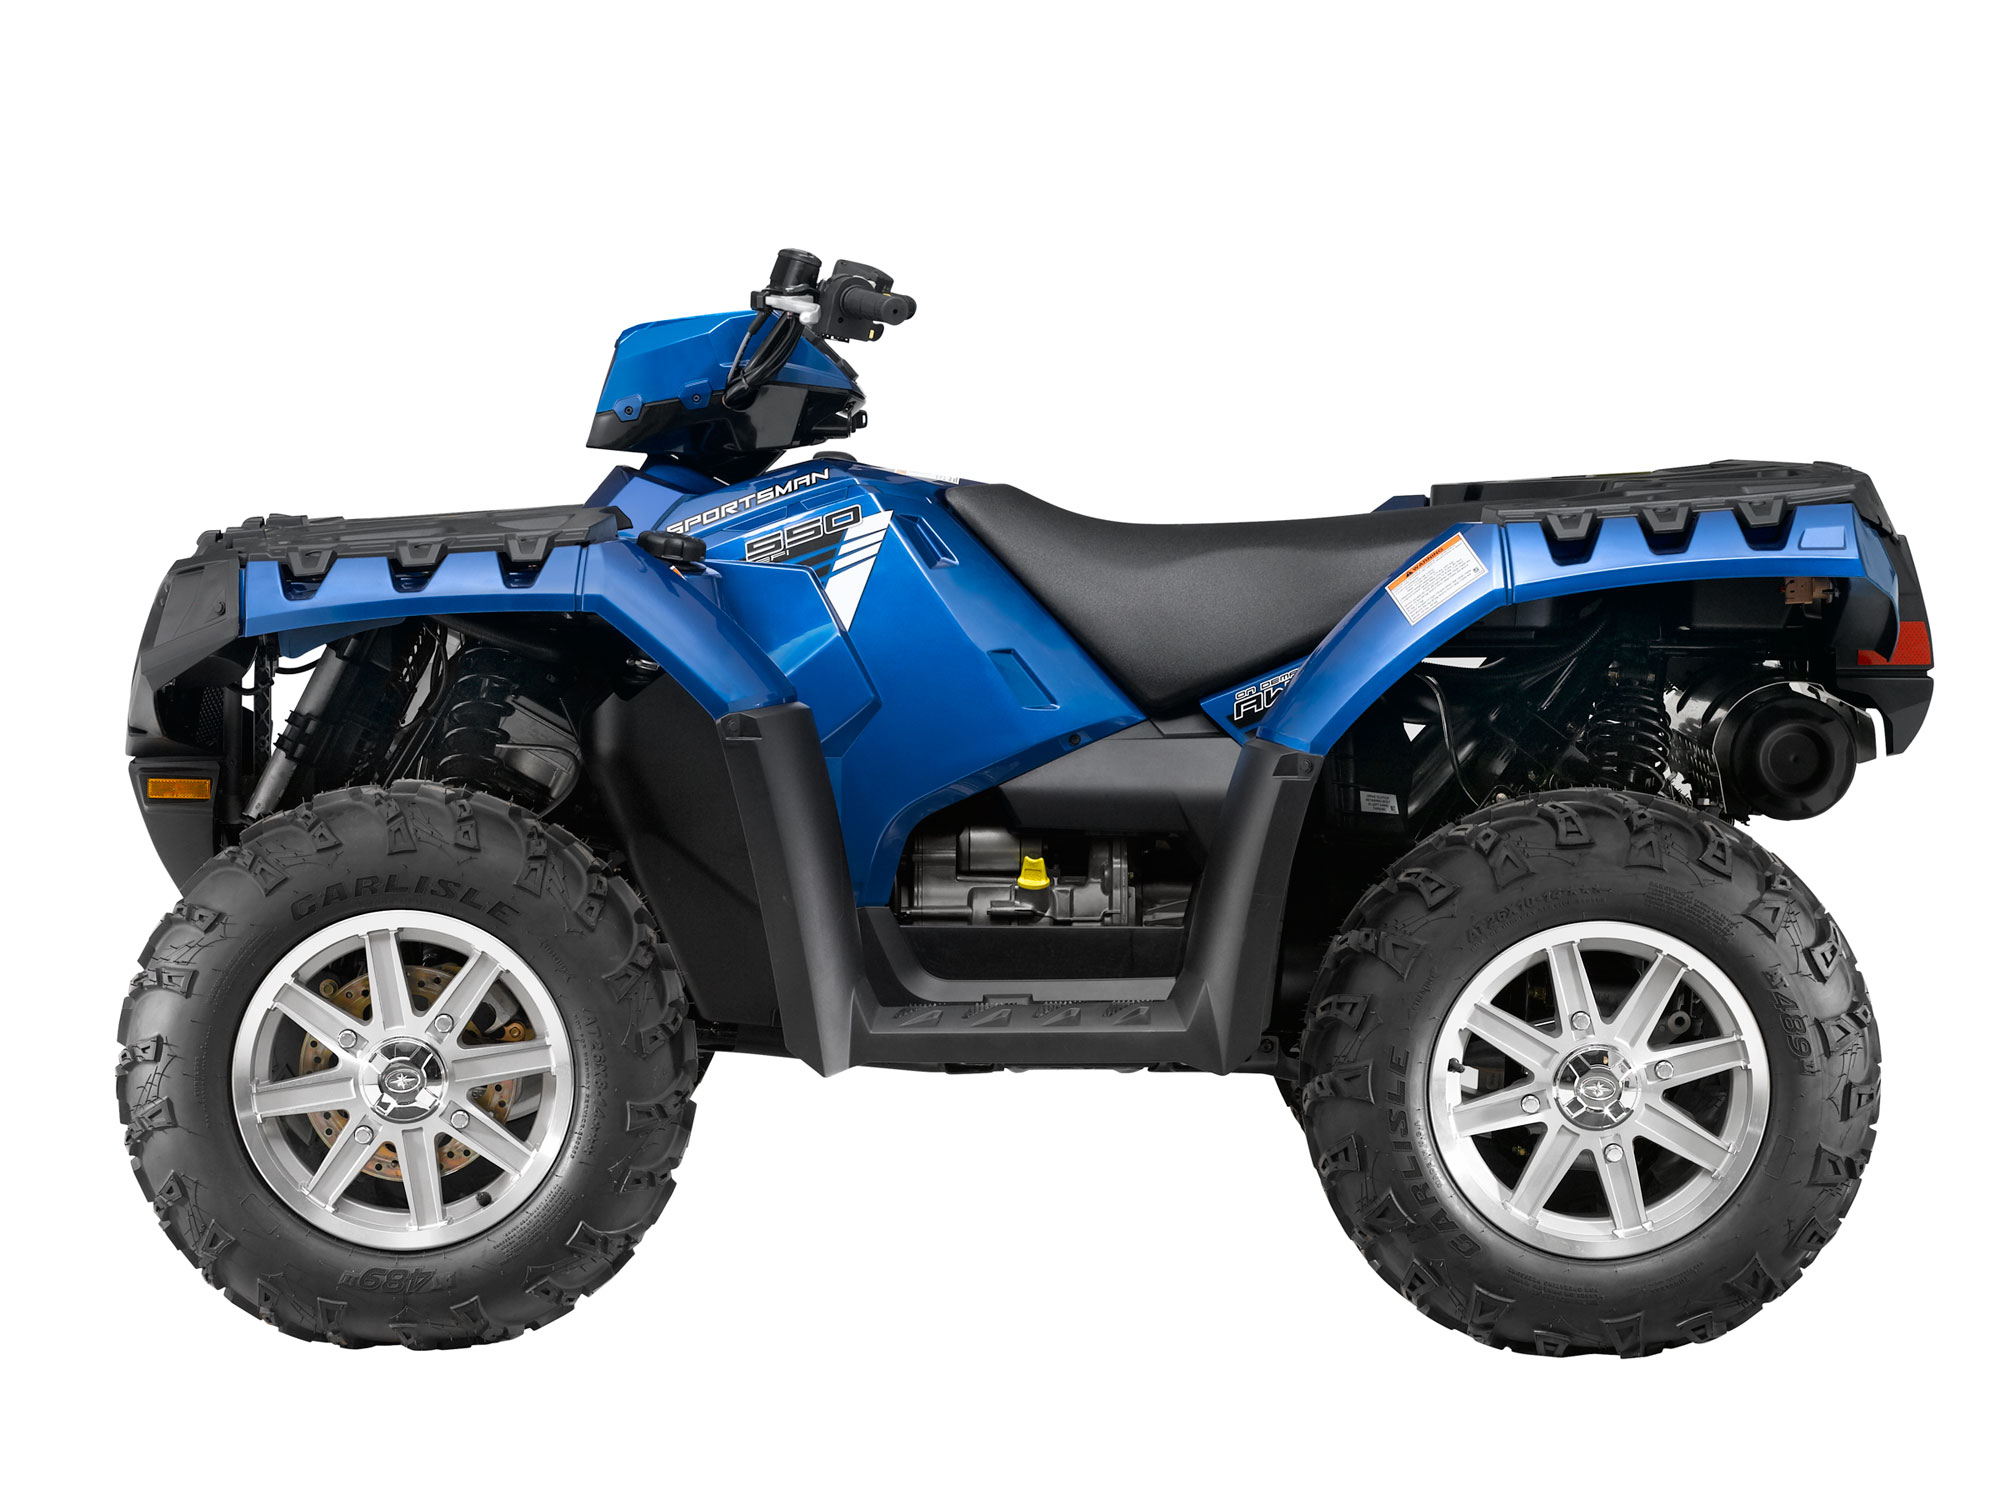 2013 polaris sportsman 550 eps blue fire review. Black Bedroom Furniture Sets. Home Design Ideas